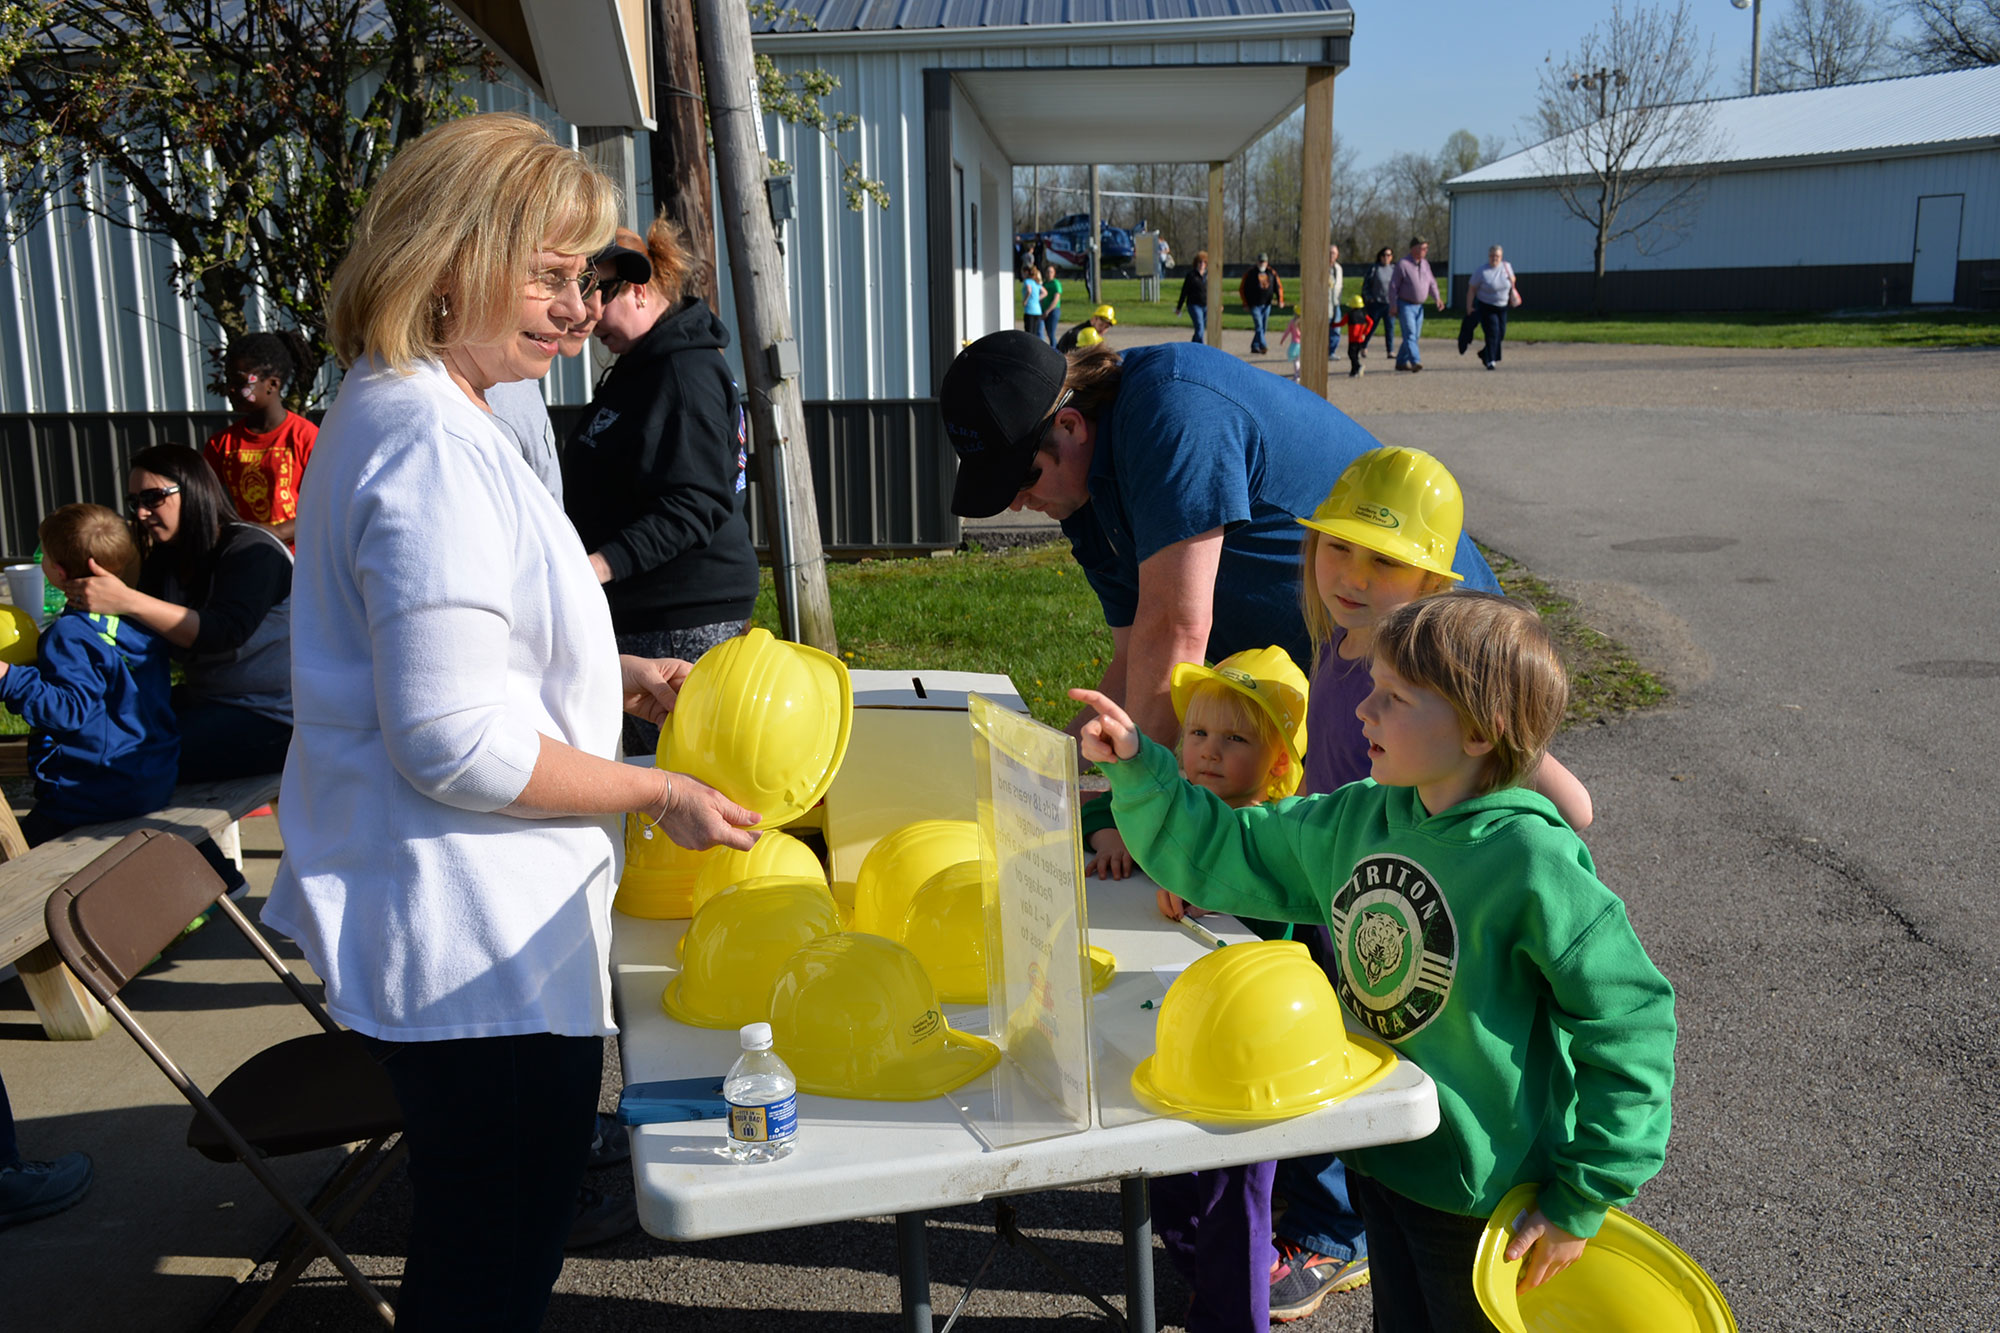 Woman handing out yellow plastic hard hats to young children.